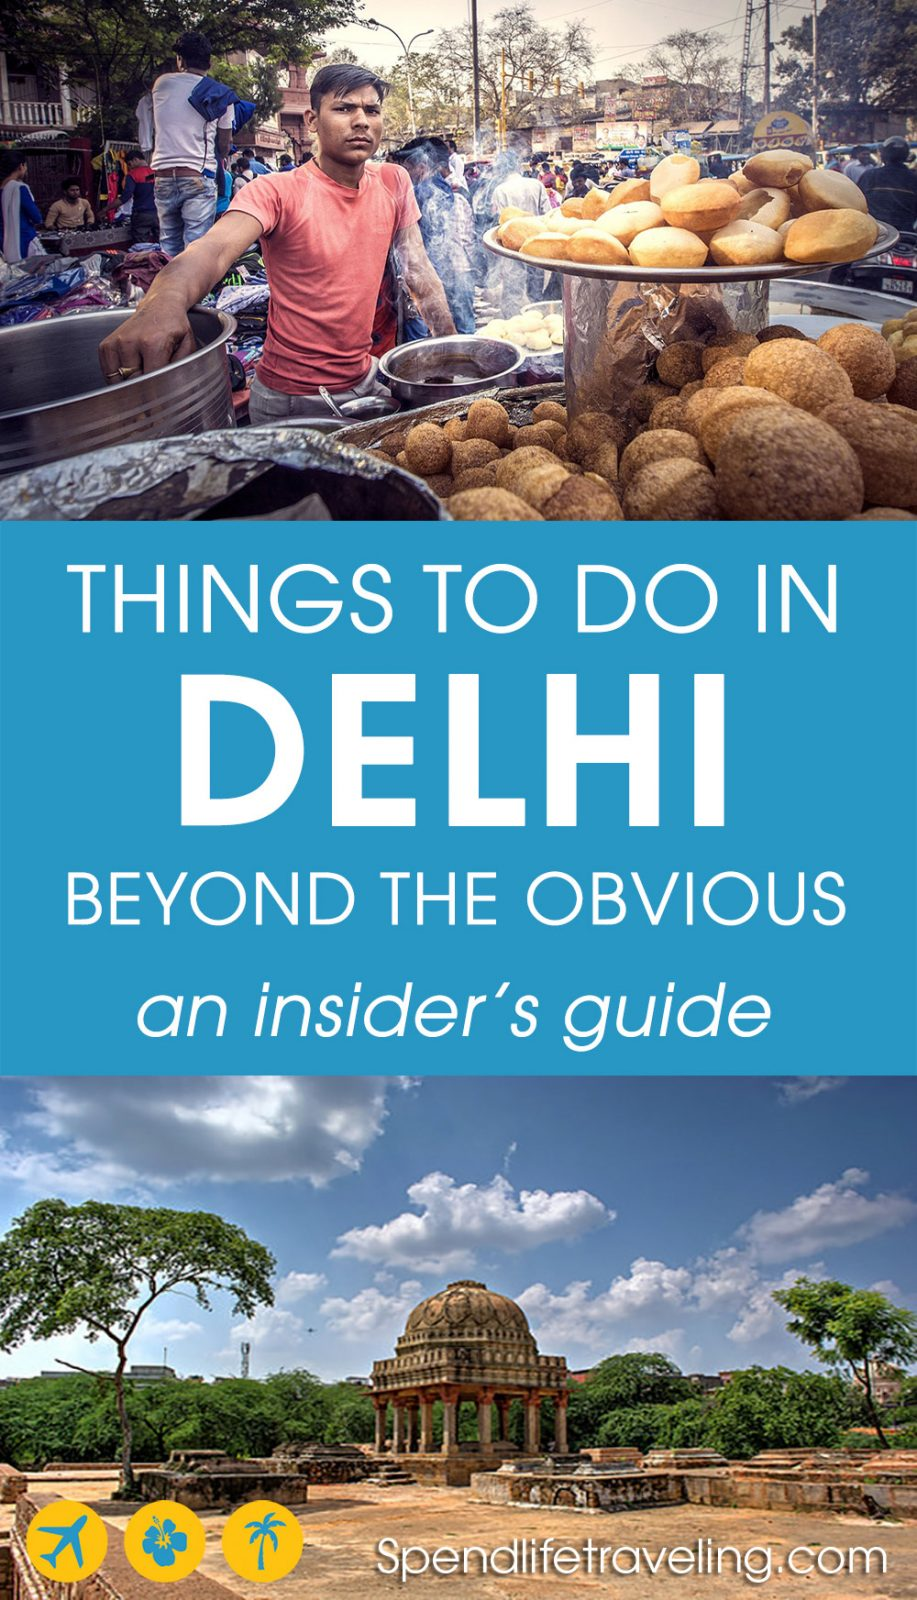 Are you traveling to Delhi, India? Check out this insider's travel guide with tips on what to see and do in Delhi beyond the obvious tourist attractions you find in every travel guide.